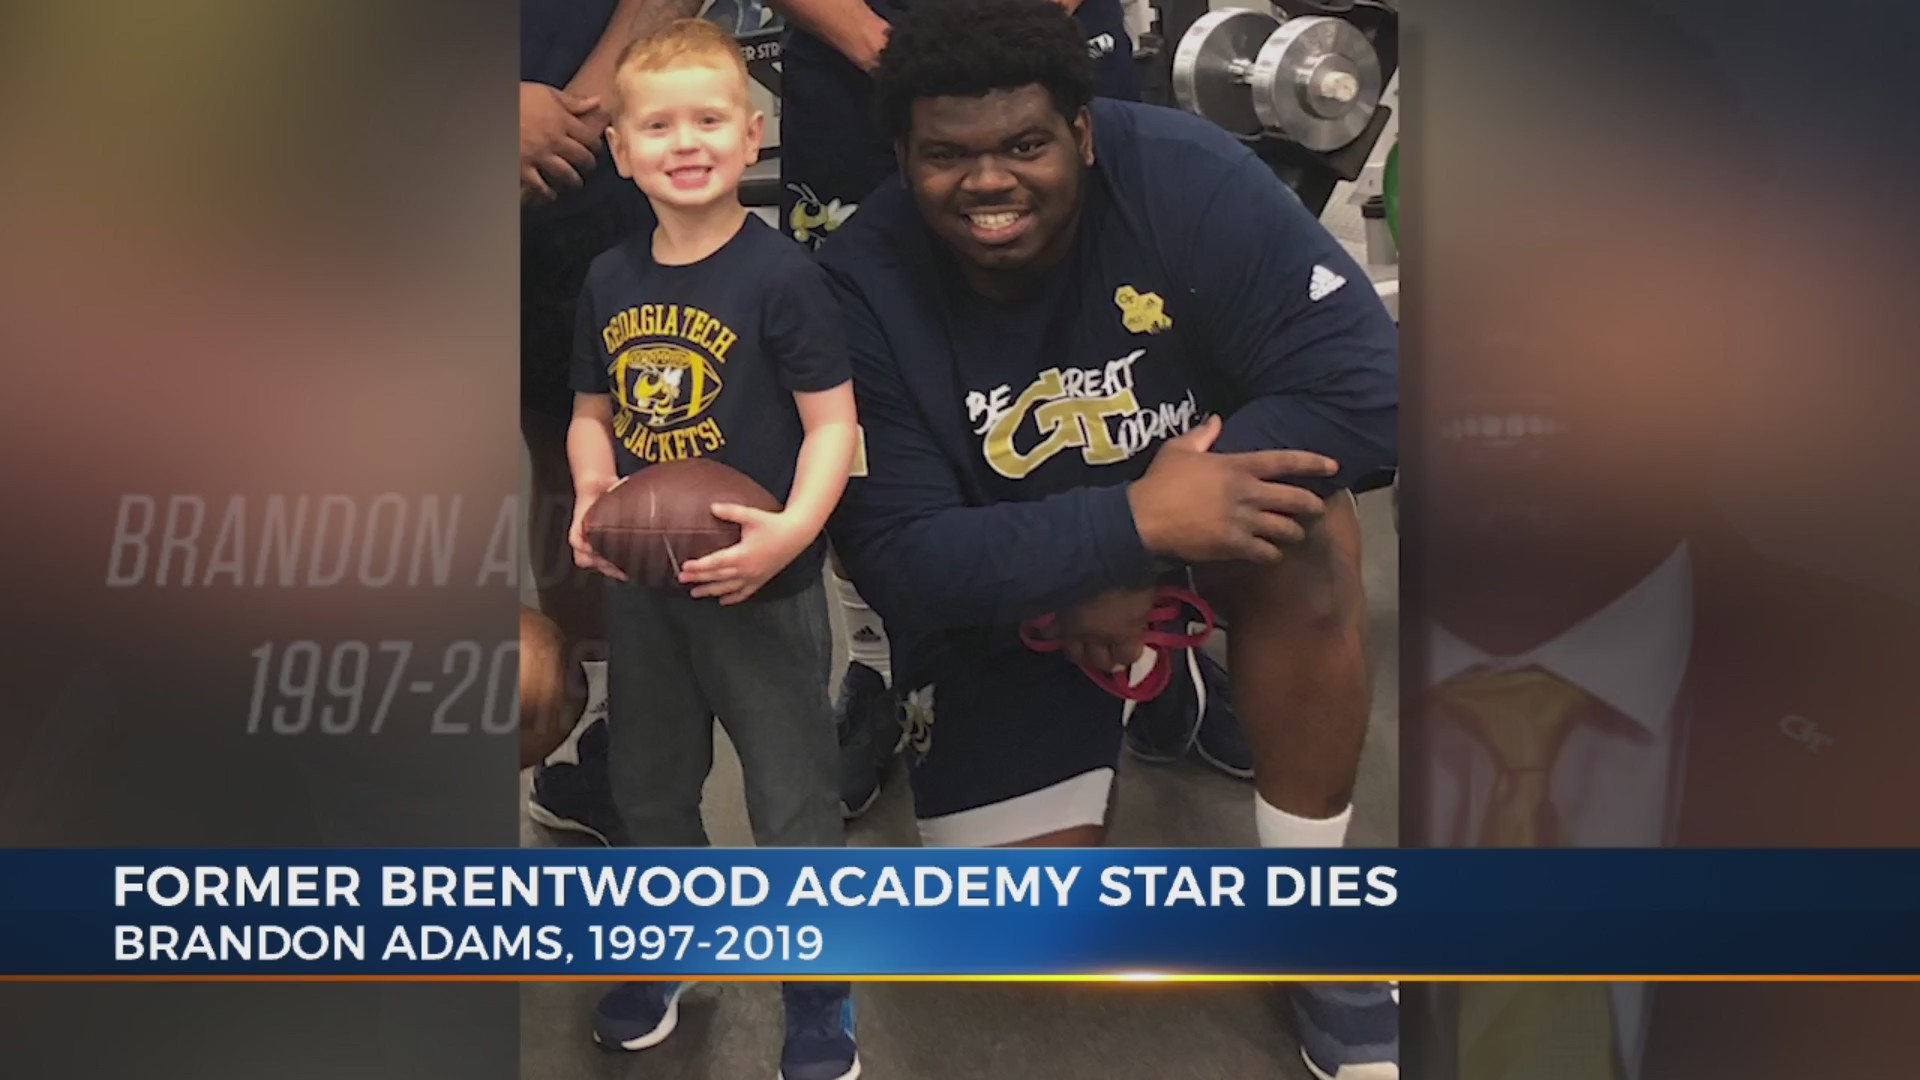 Community mourns loss of former Brentwood Academy player